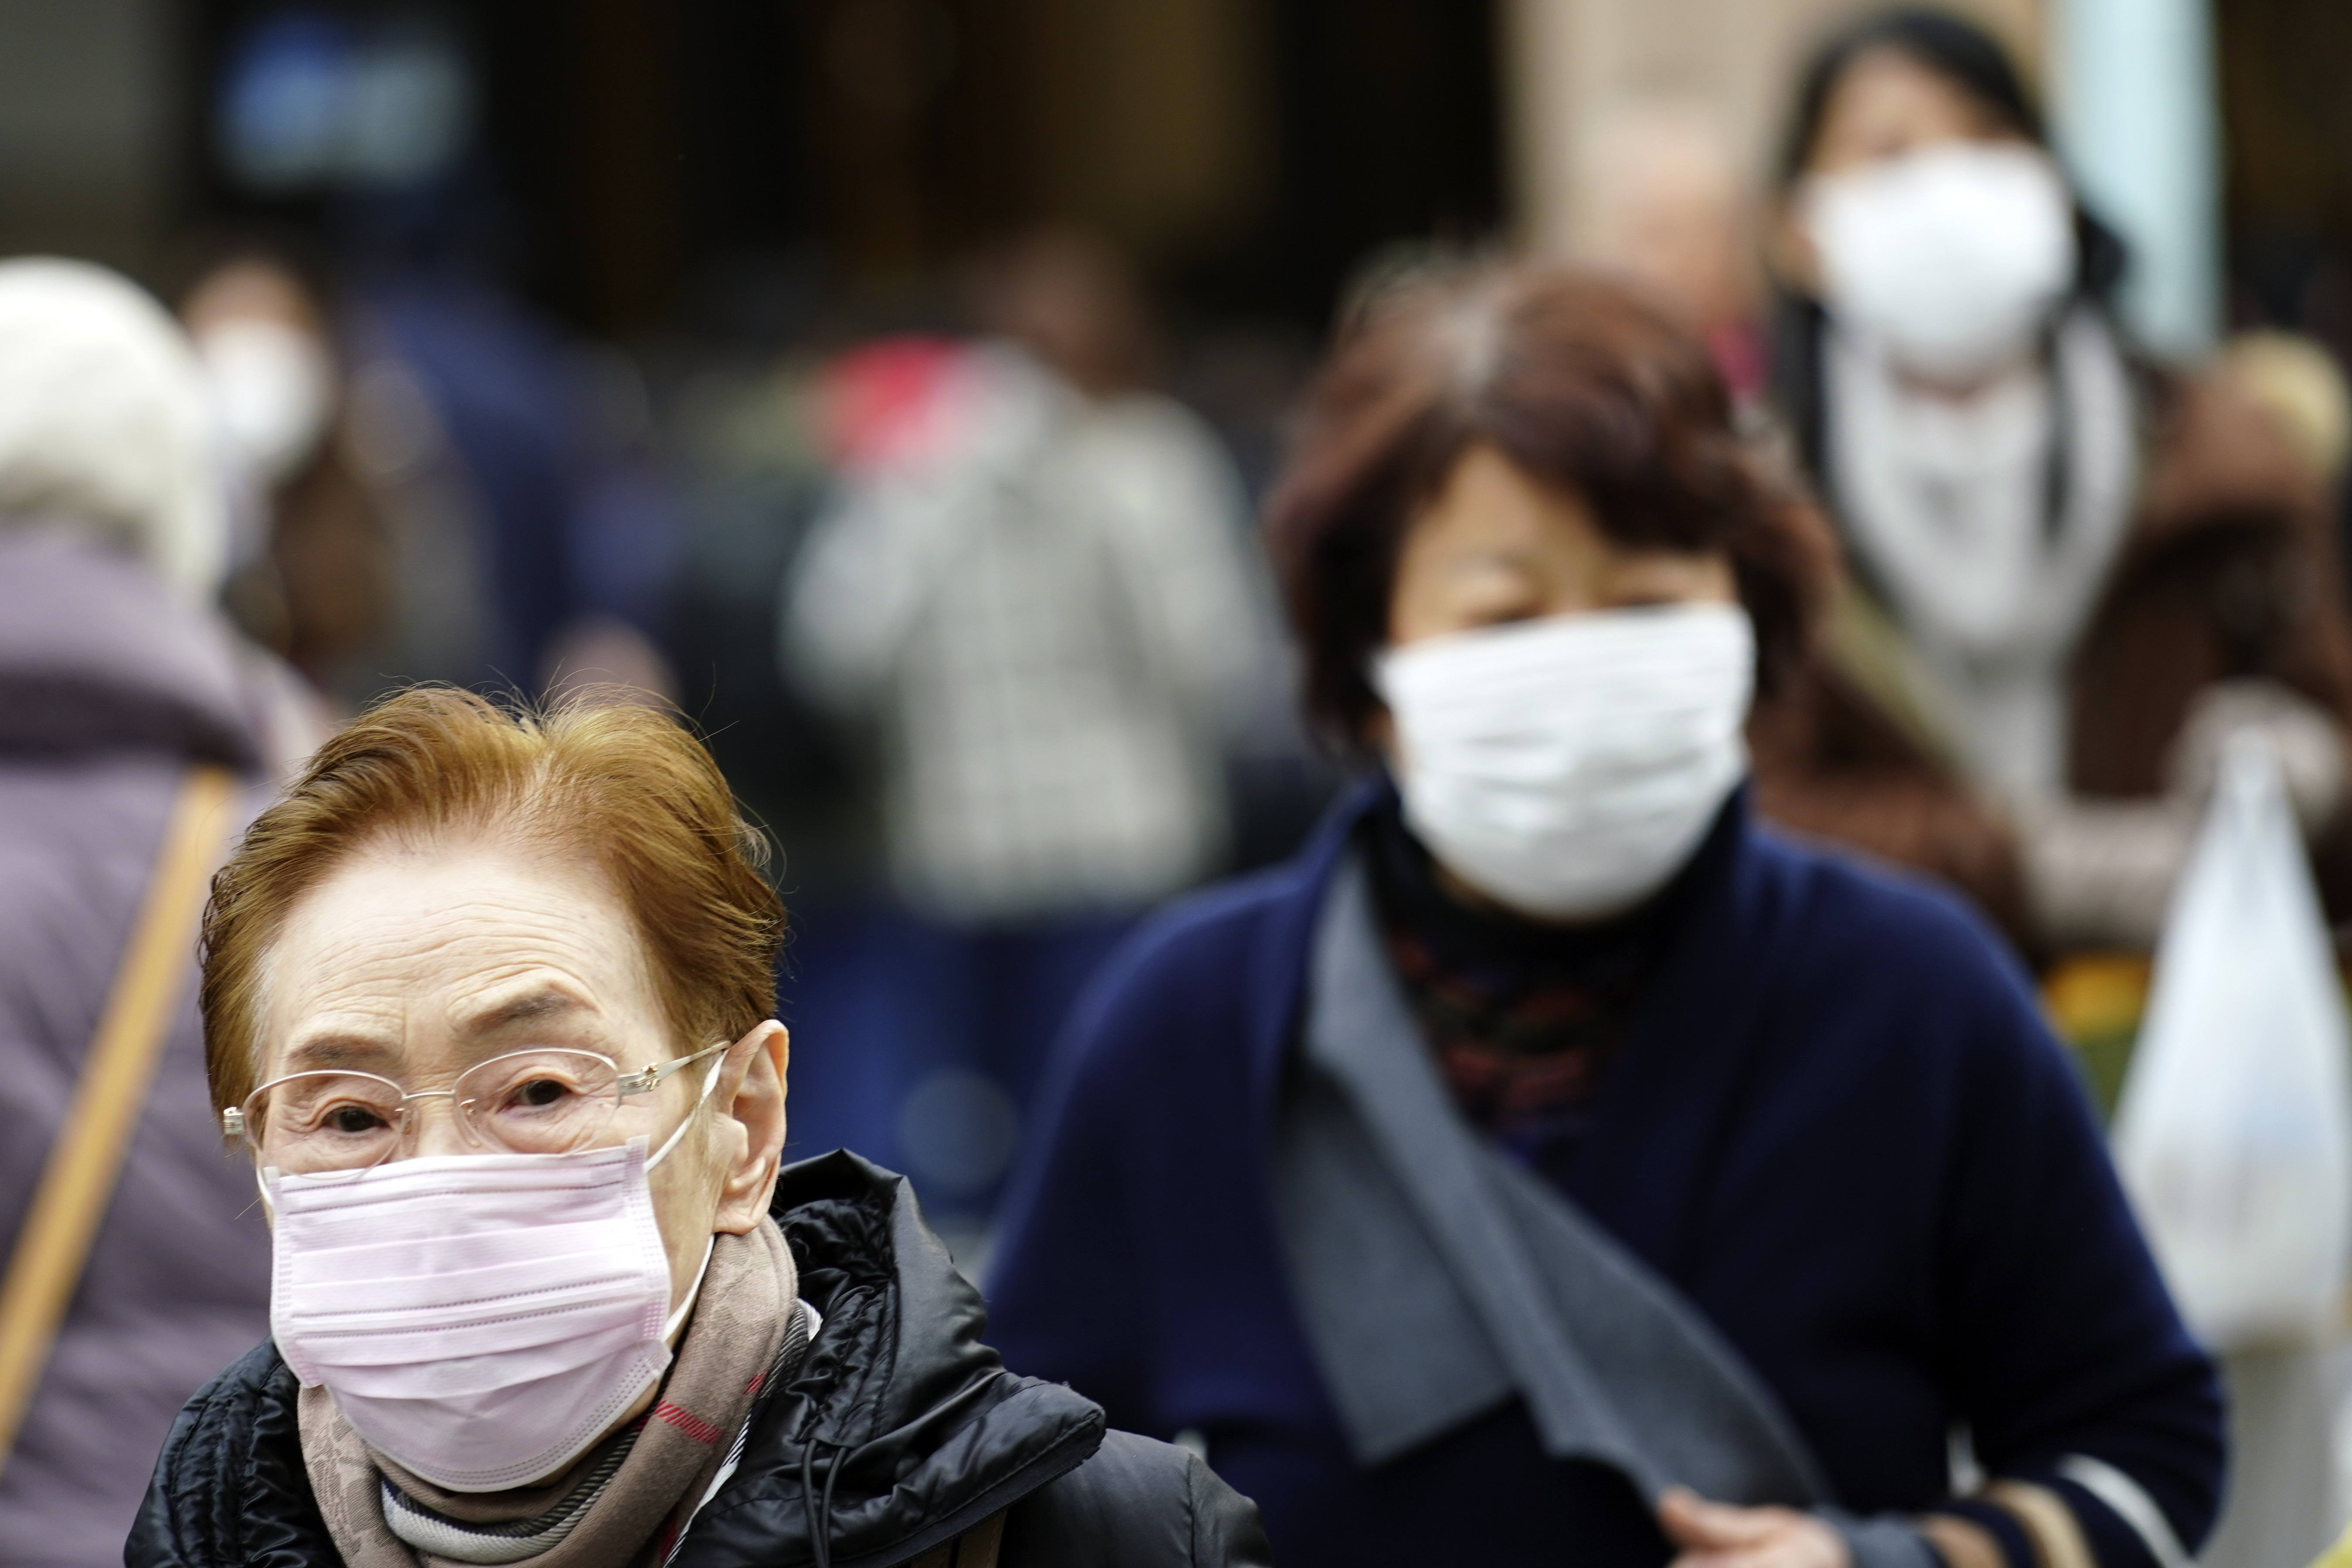 Pedestrians wear protective masks as they walk through a shopping district in Tokyo, Japan, on Jan. 16, 2020.